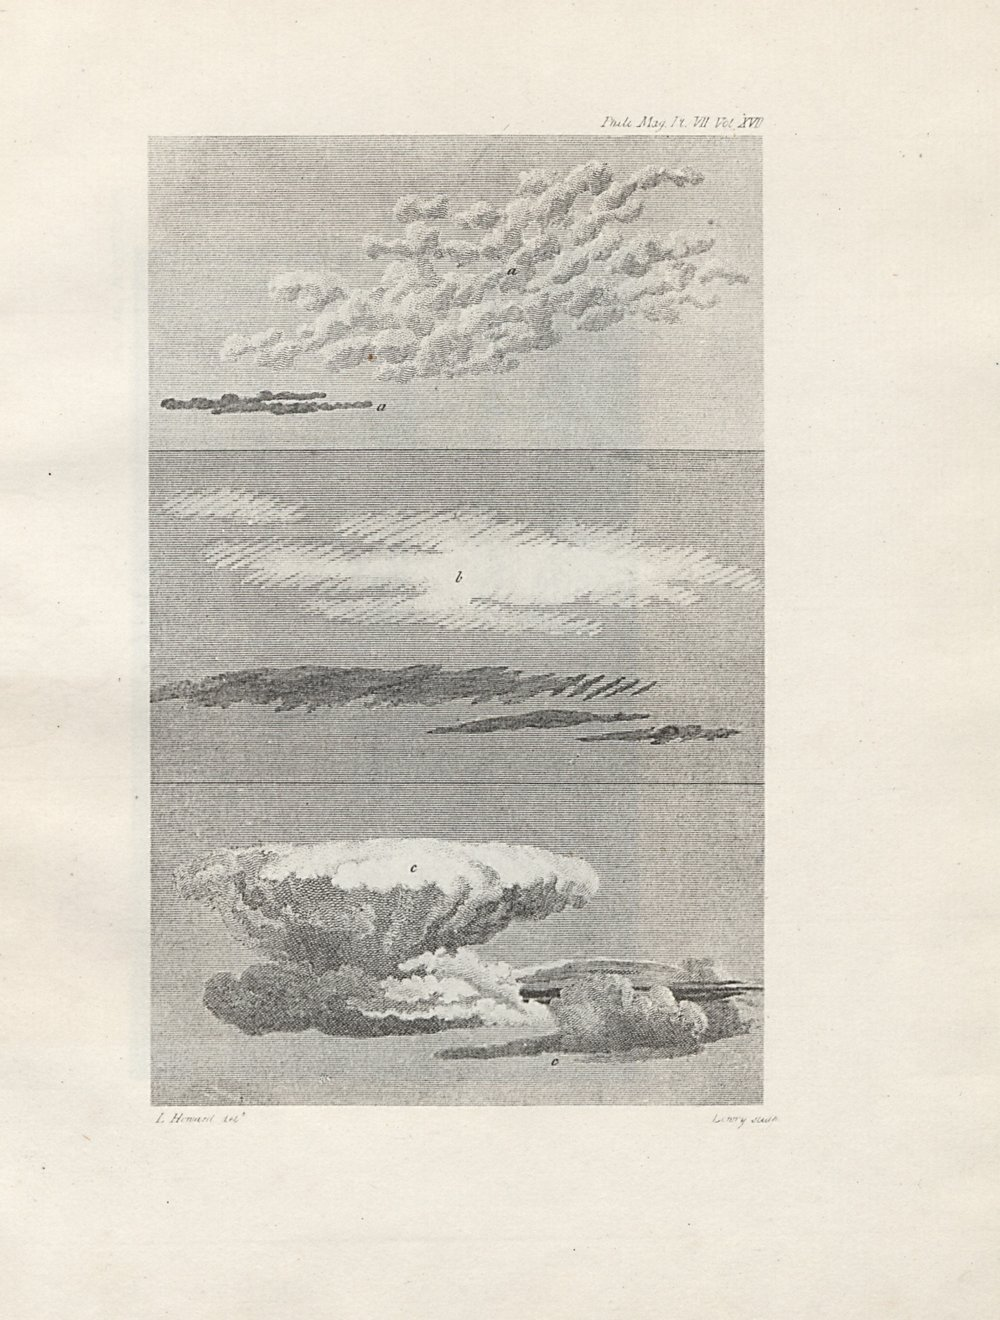 On the modifications of clouds : London 1803. Mit e. Einl. u. 3 Taf. Wolkenbilder in Facs. Author: Howard, Luke. Reprint  Nendeln/Liechtenstein : Kraus, 1969